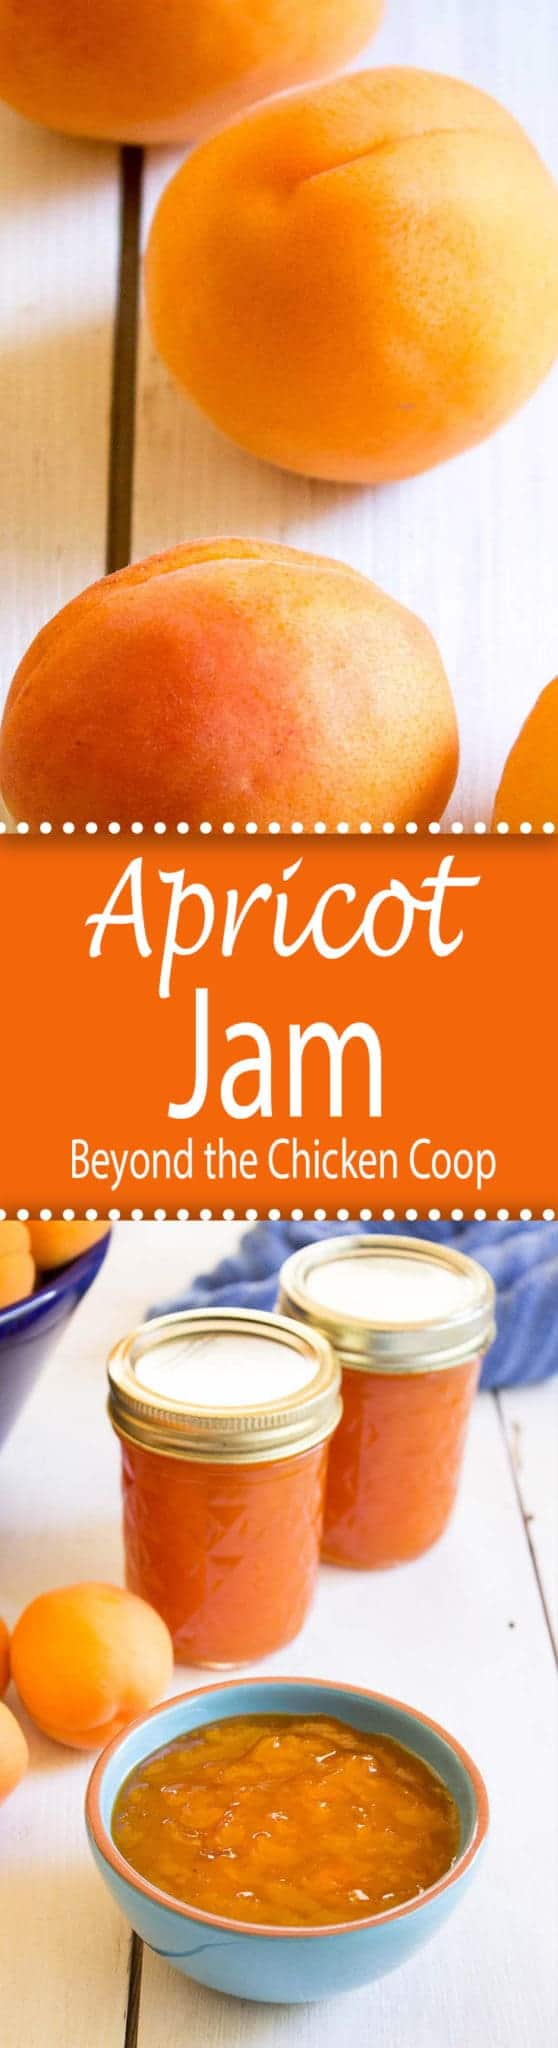 Homemade apricot jam captures the very best flavor of ripe apricots. beyondthechickencoop.com